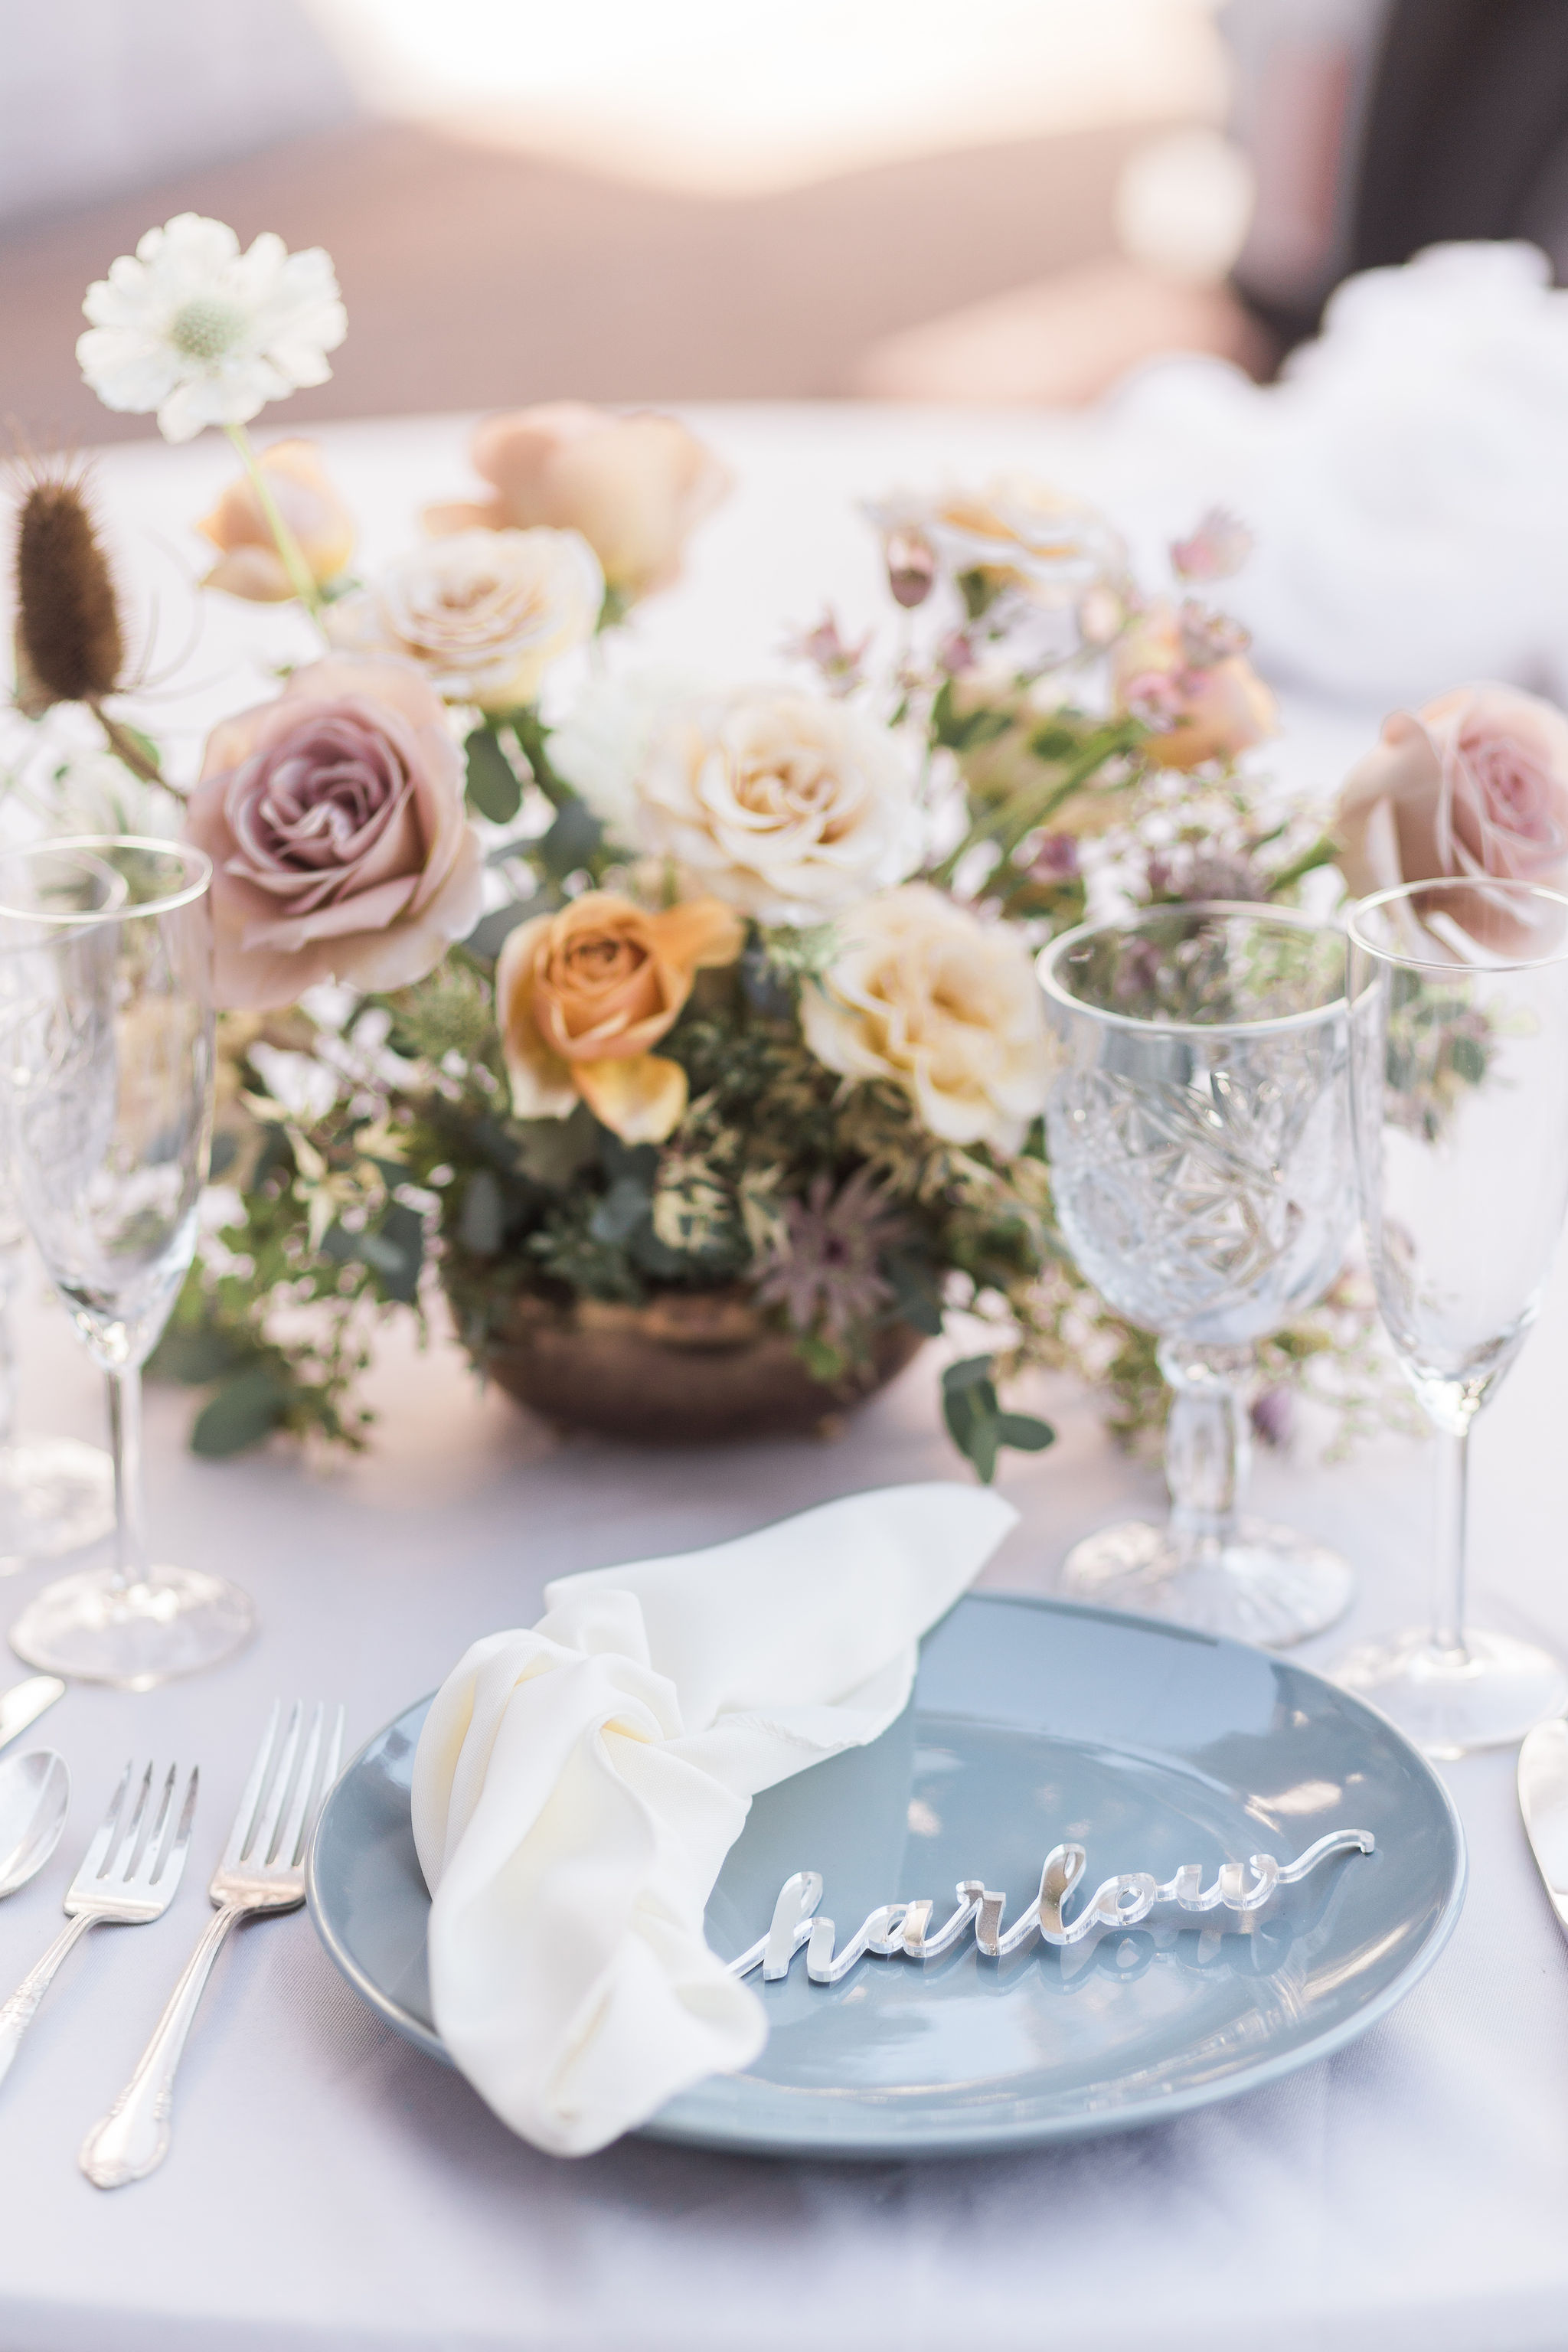 Georgia-Ruth-Photography-Flat-Lays-Table-Details-117.jpg